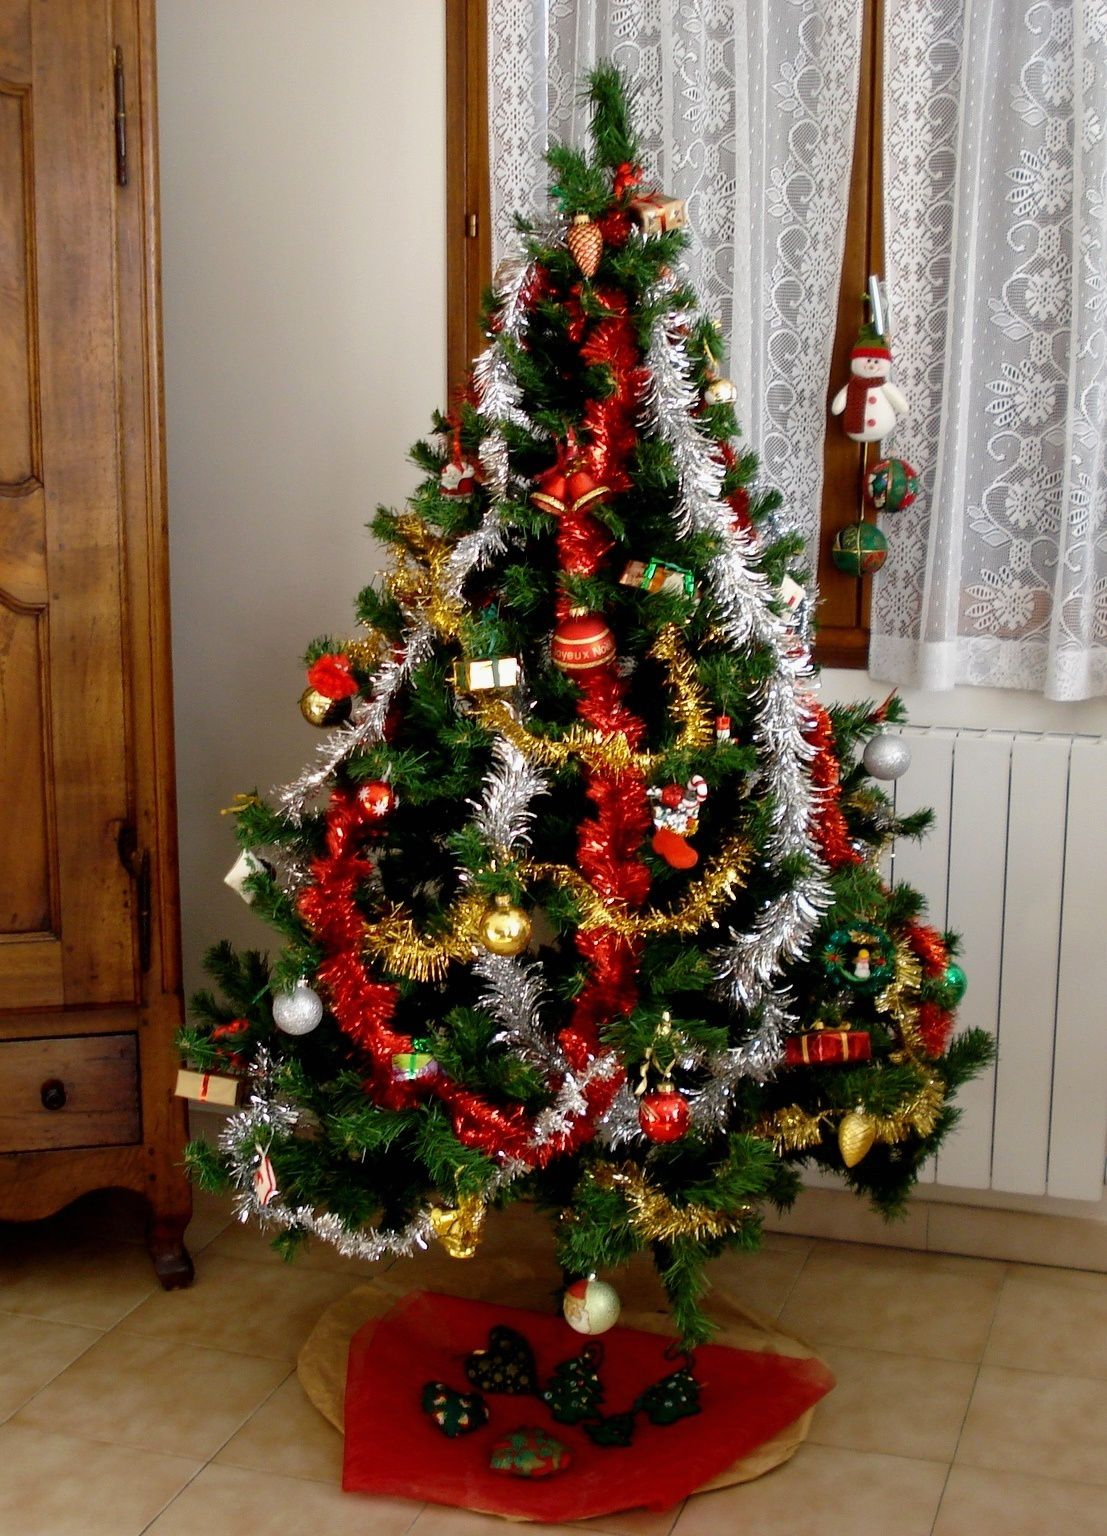 Le traditionnel sapin.